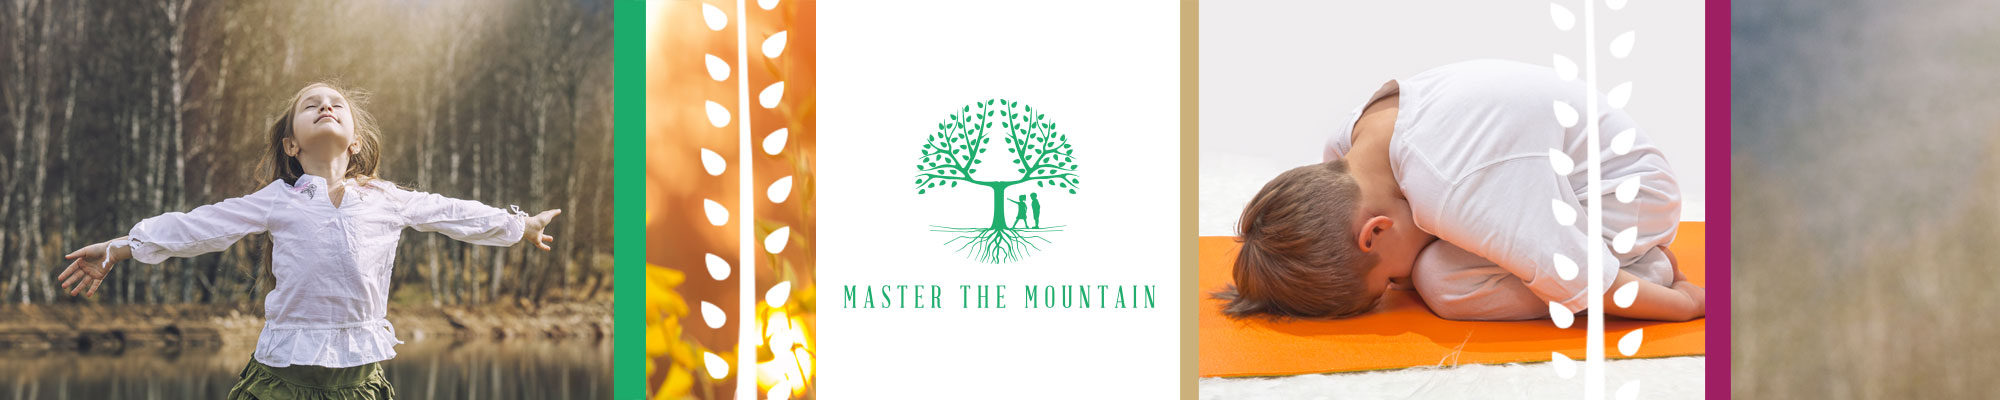 Contact Master the Mountain logo banner